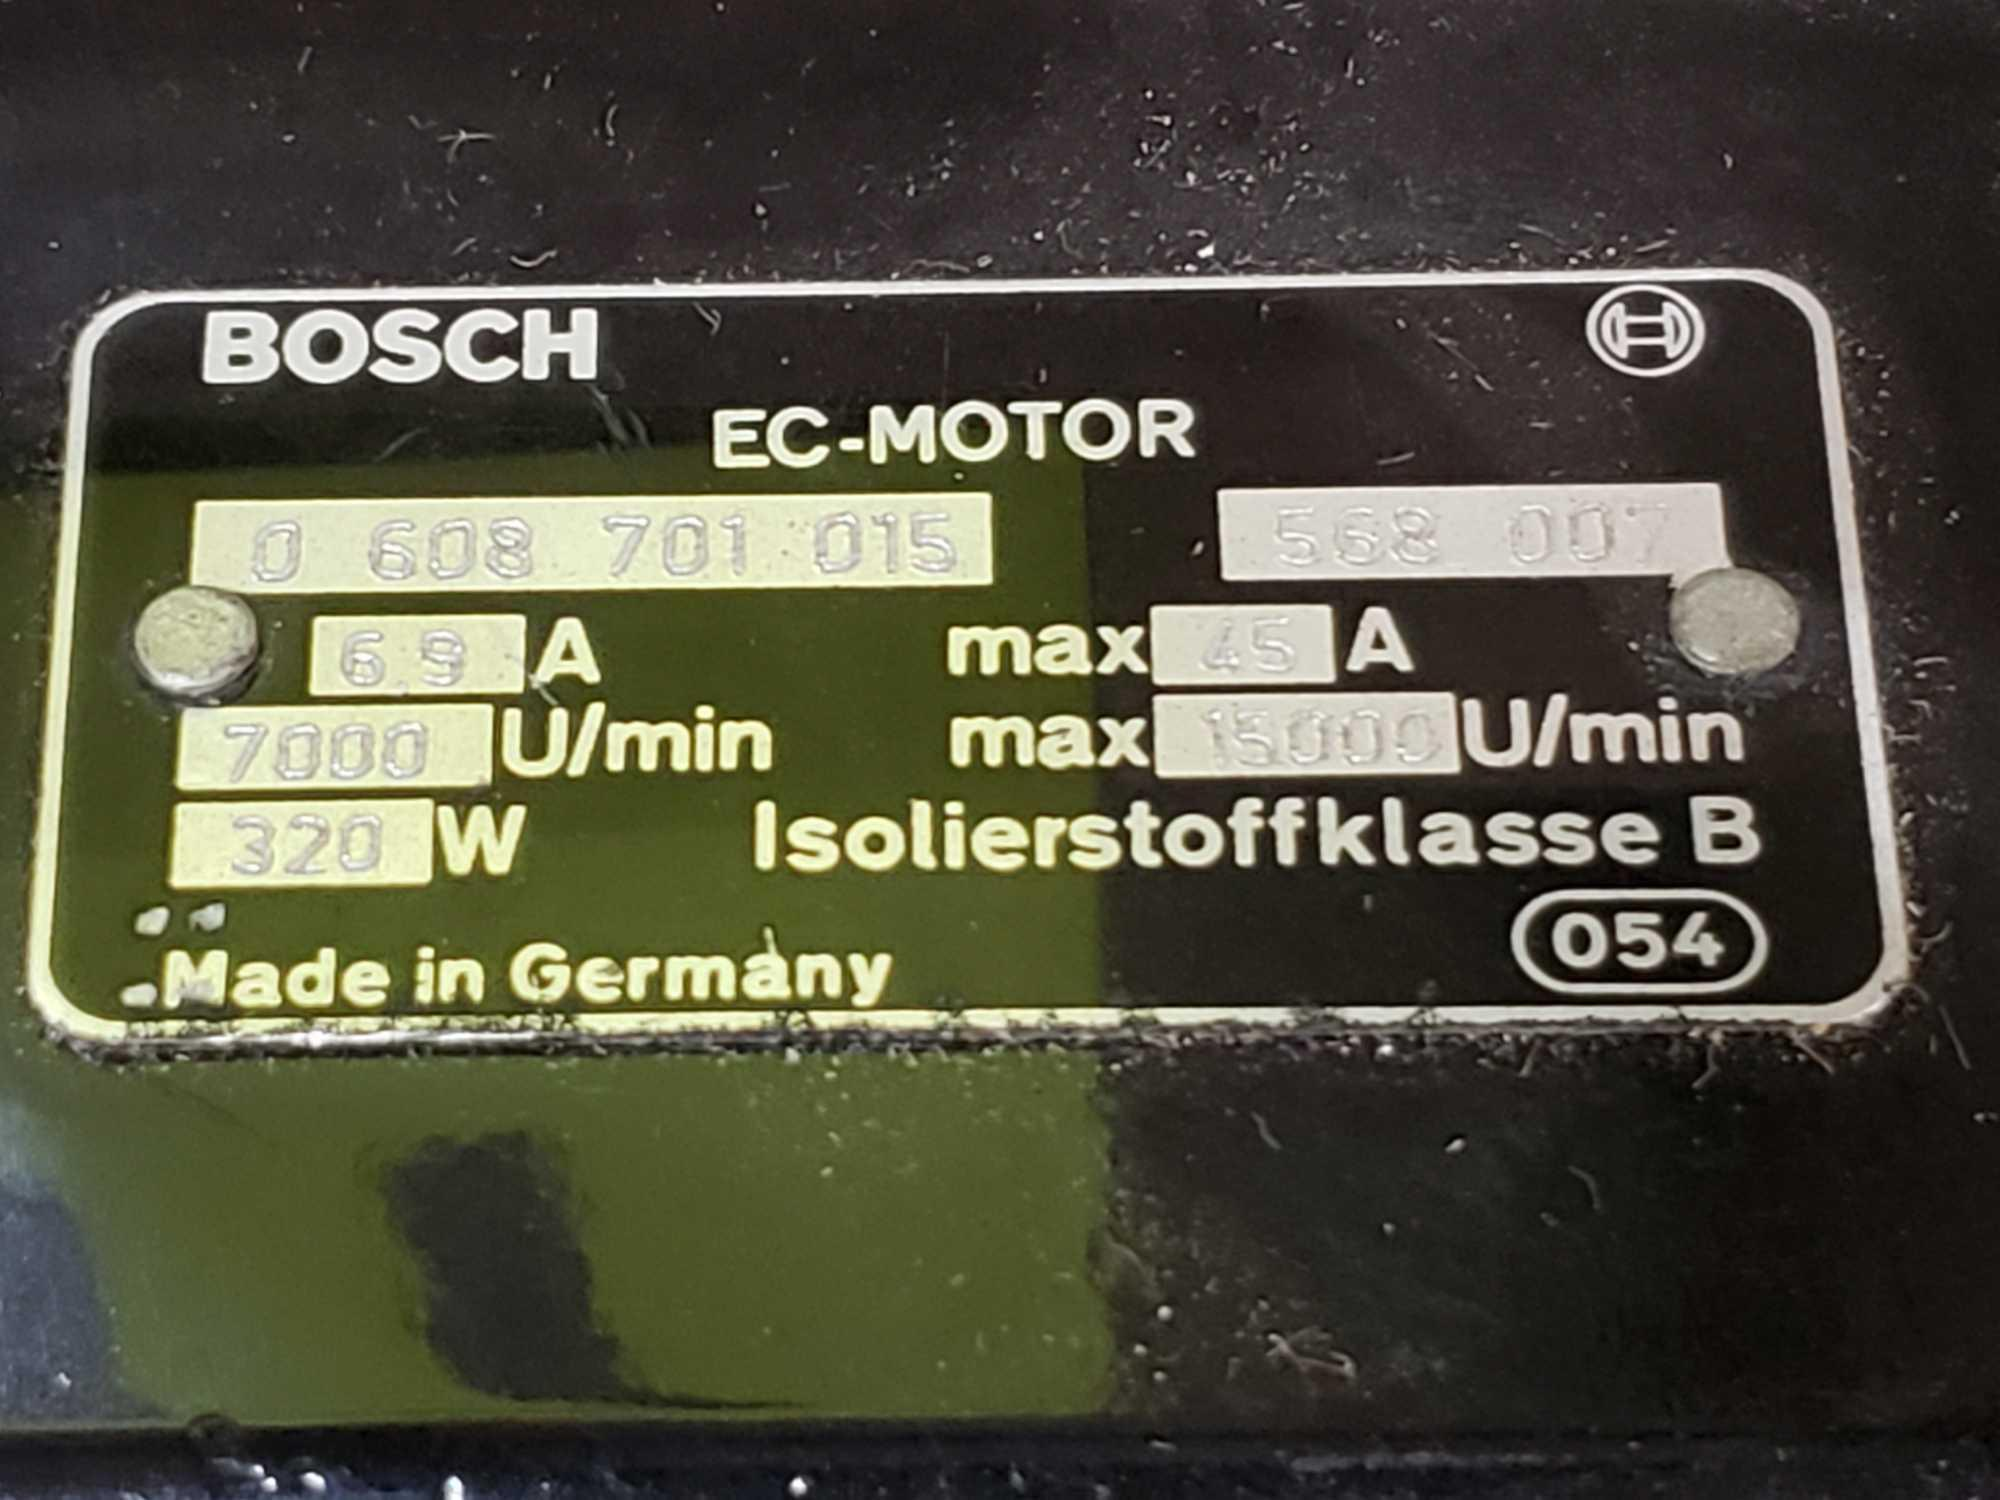 Bosch EC motor model 0-608-701-015. Appears to be new old stock with shelf wear. - Image 2 of 3